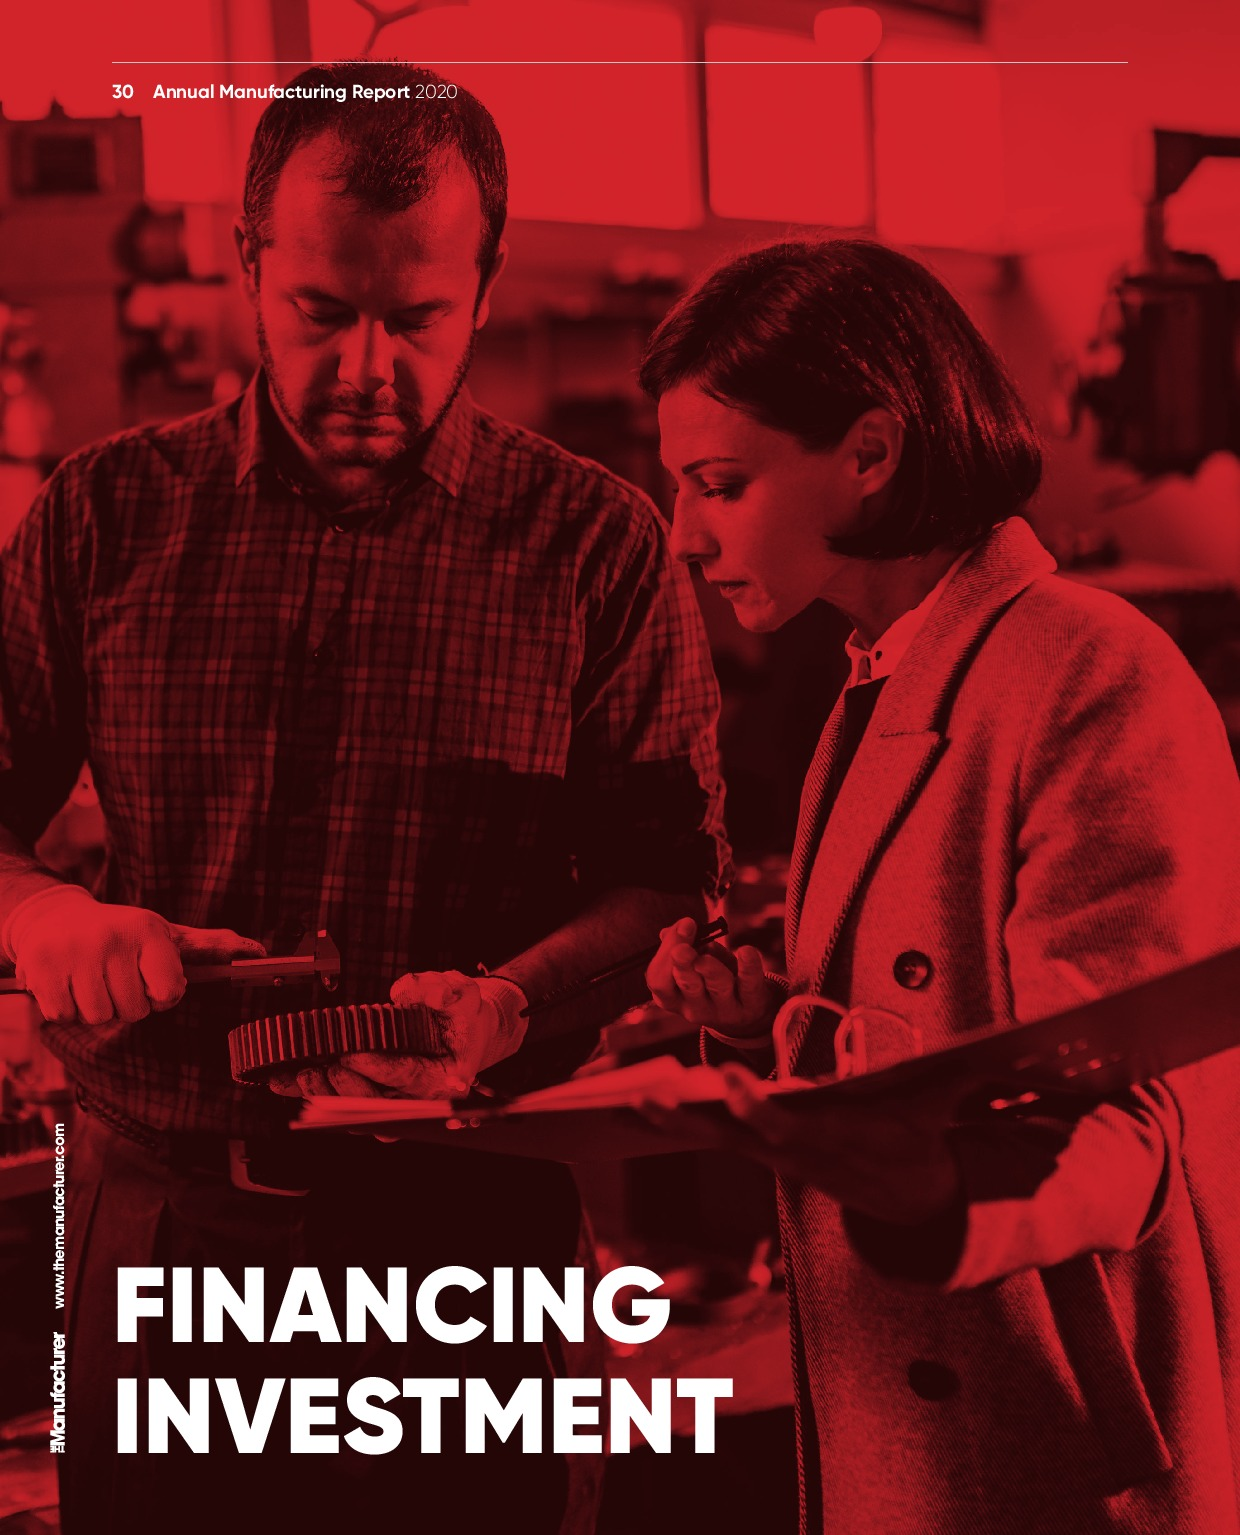 Annual Manufacturing Report 2020   Page 30